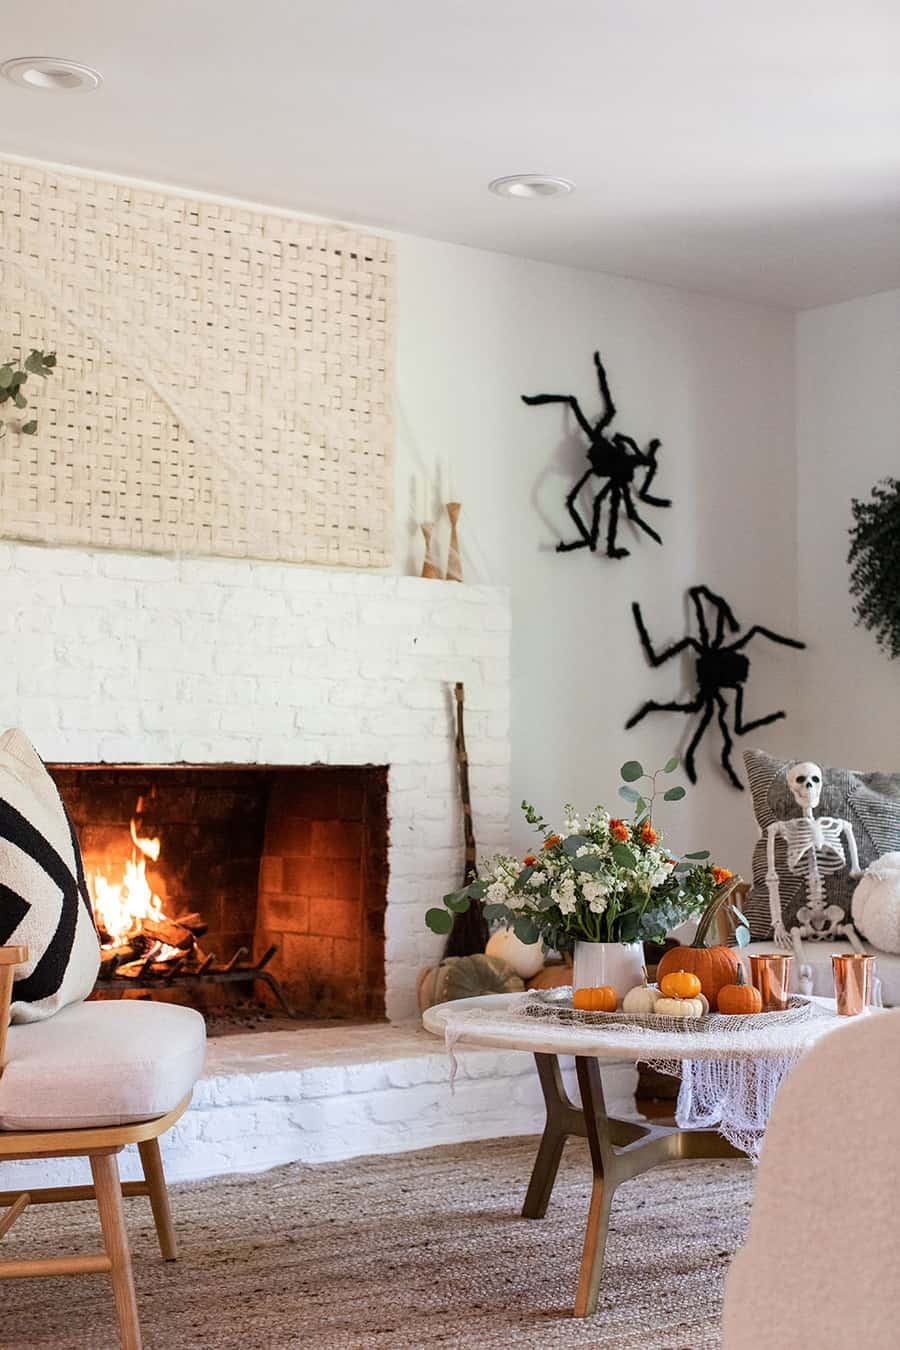 Fireplace and Halloween decorations